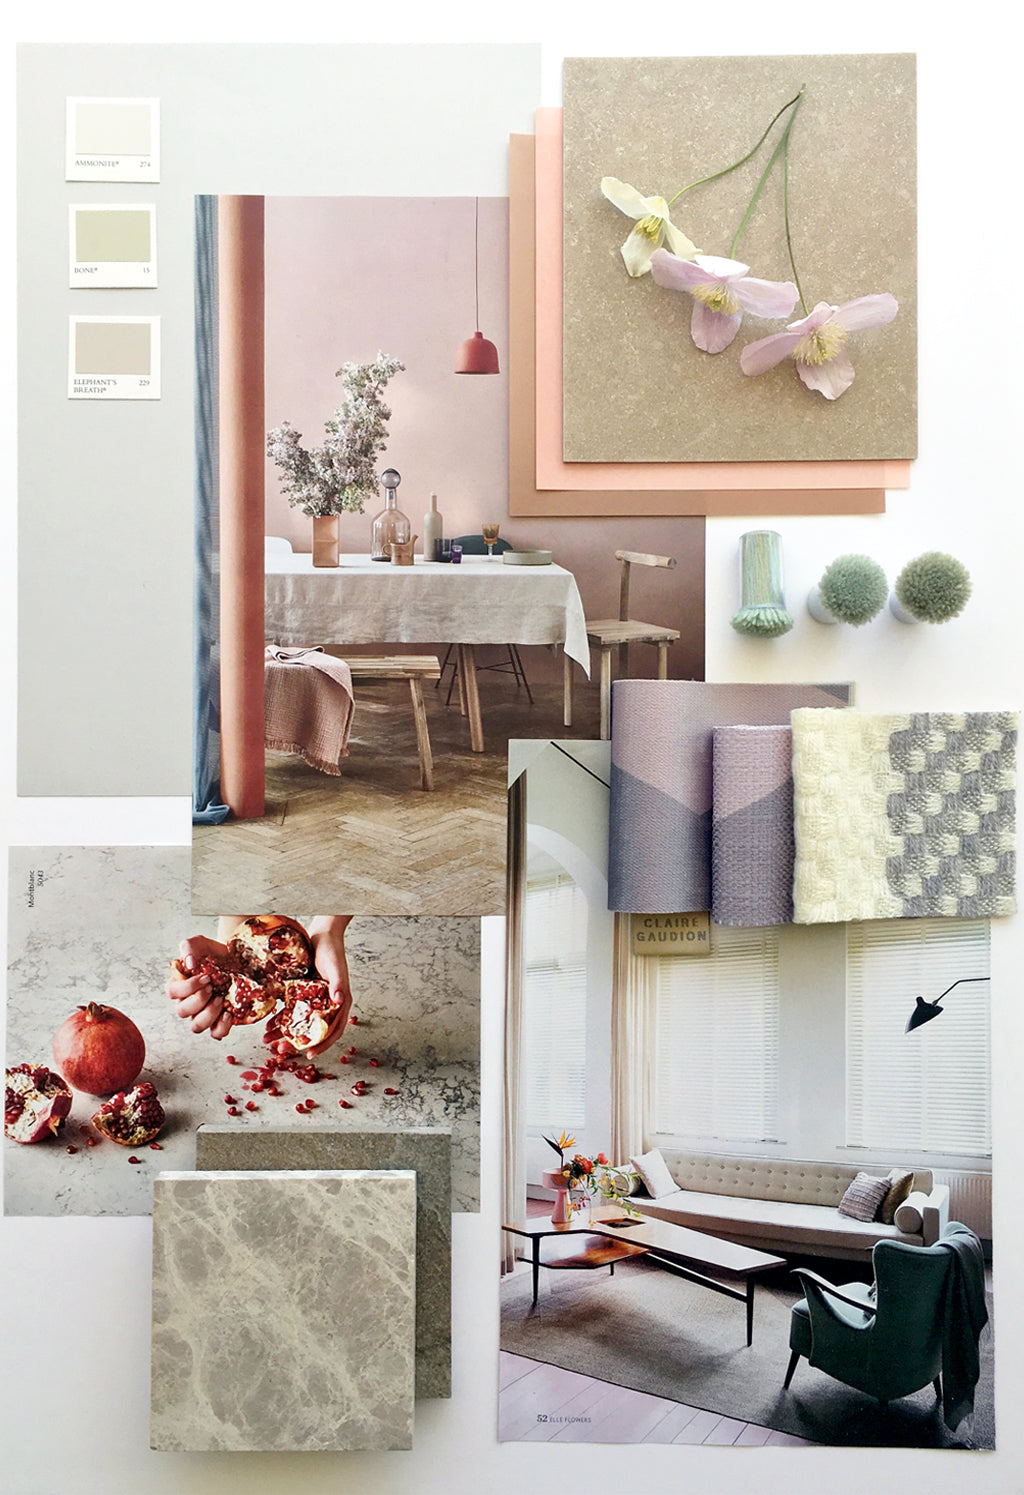 Workshop: Mood Boards for Interior Design